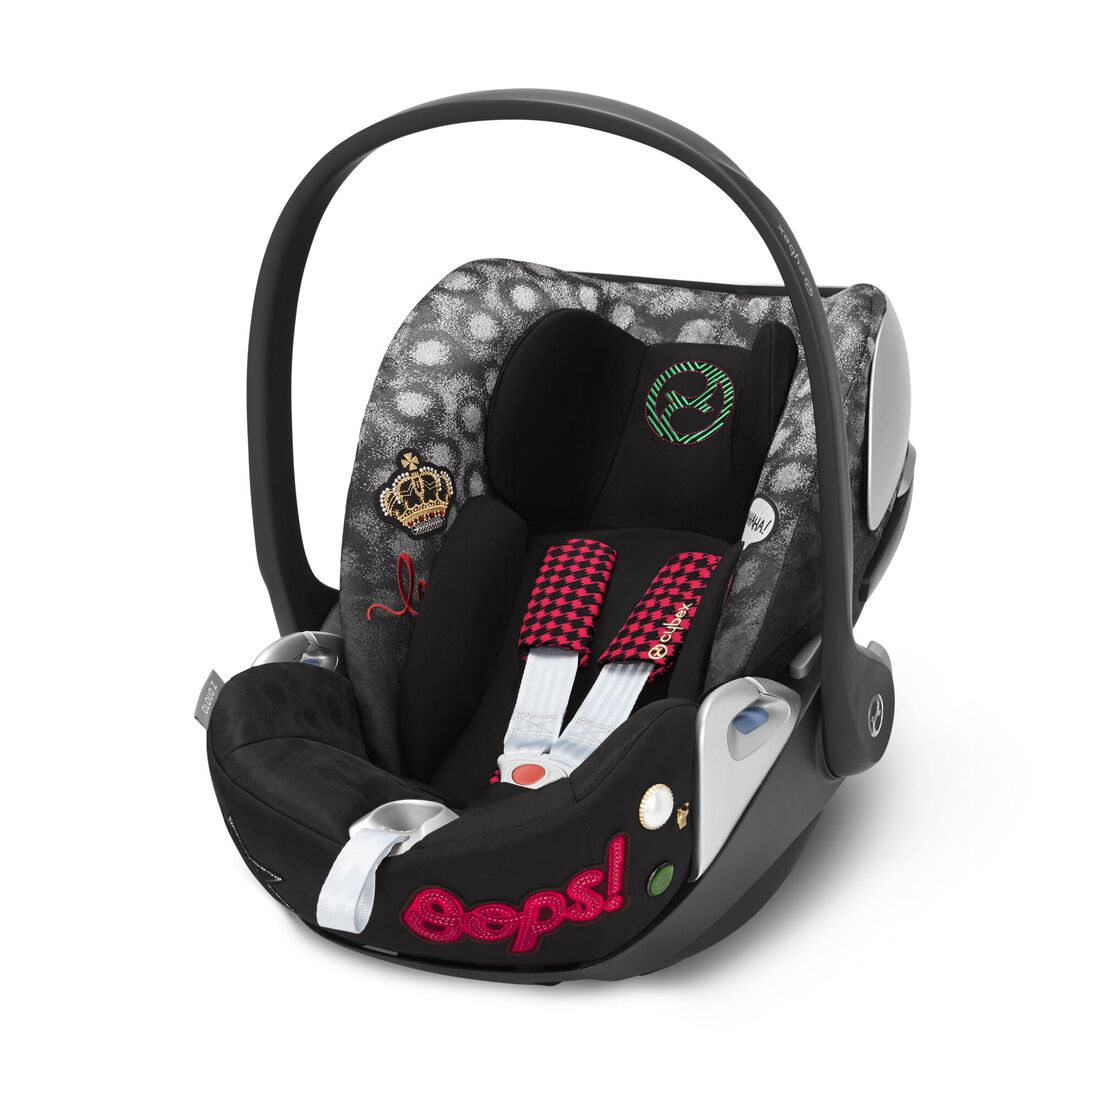 CYBEX Cloud Z i-Size - Rebellious in Rebellious large image number 2